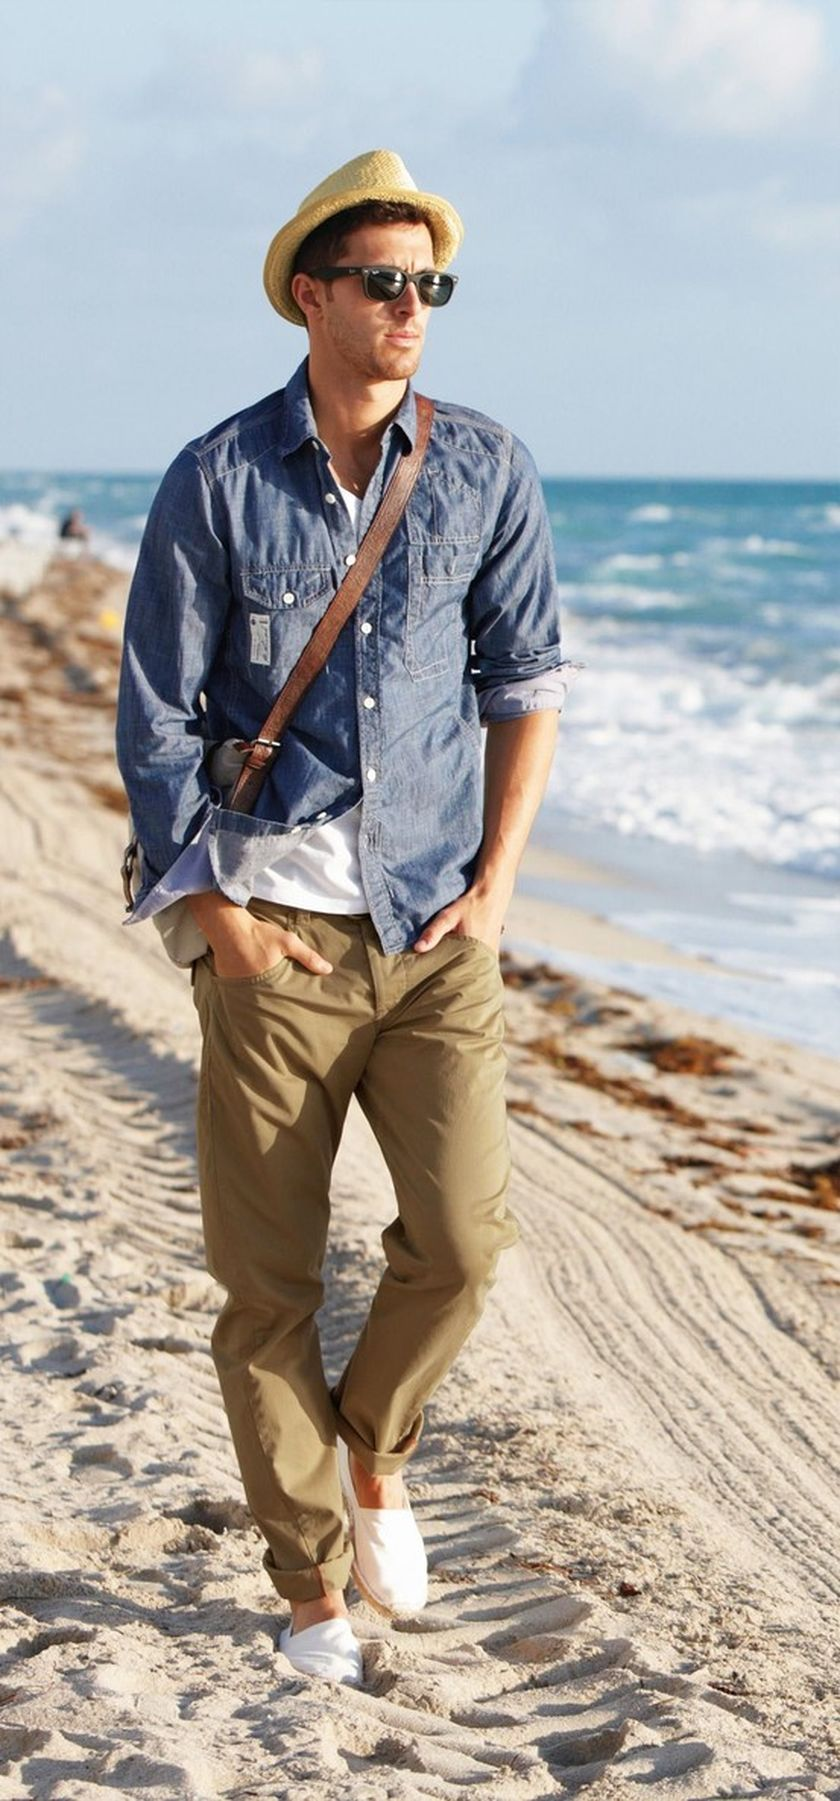 Mens fashions should wear while on the beach 47